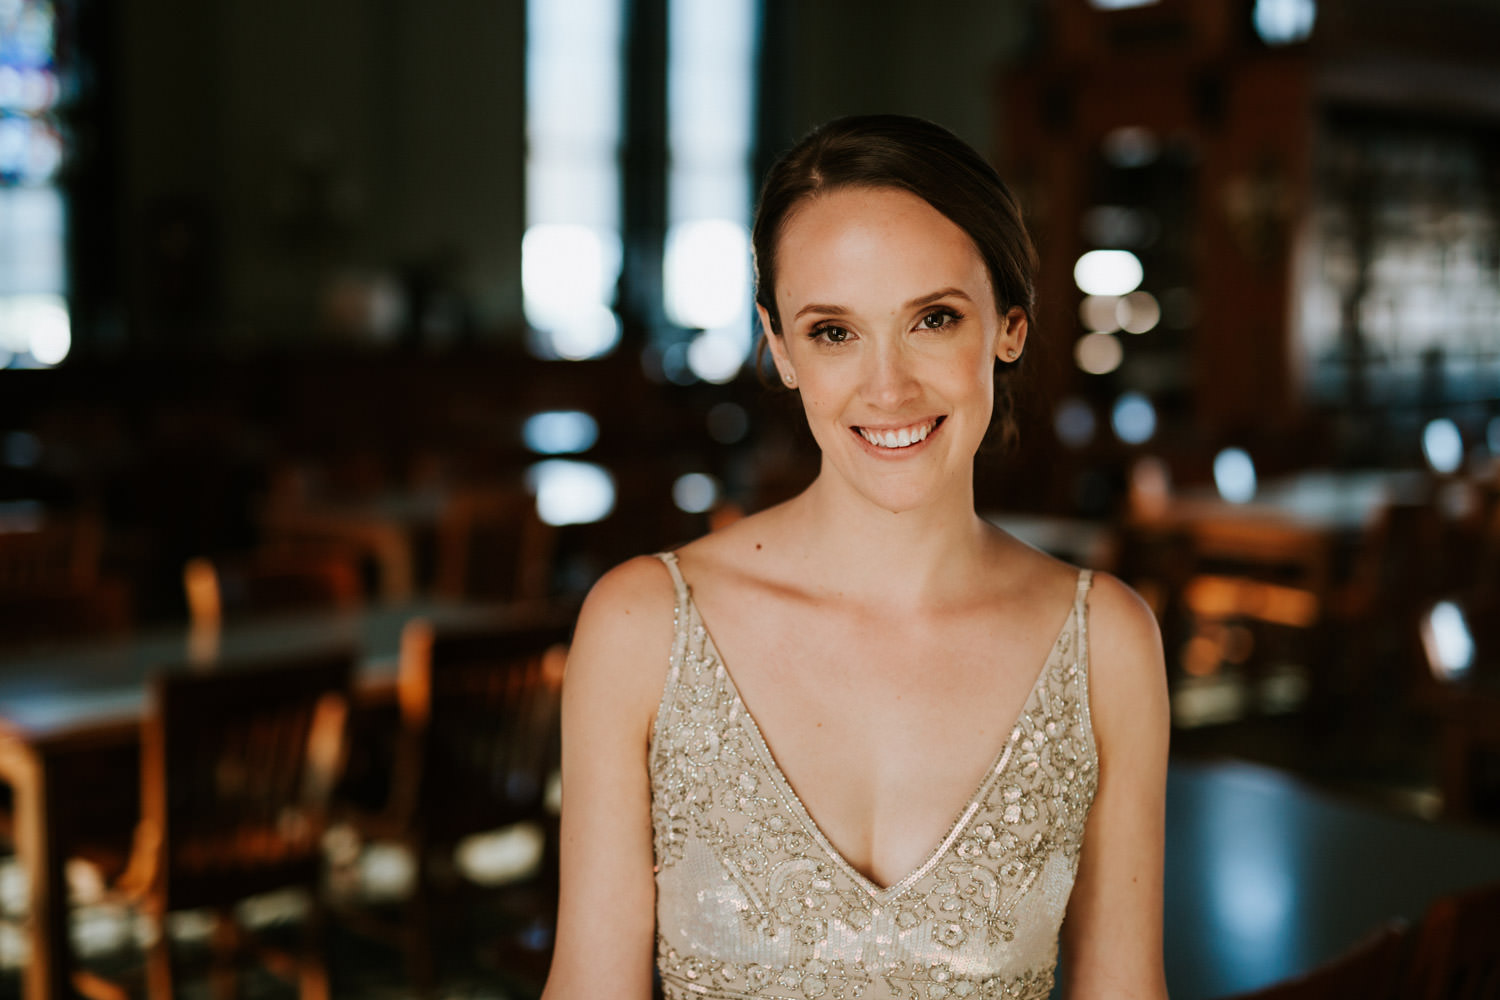 Natural portrait of the bride wearing BHLDN dress